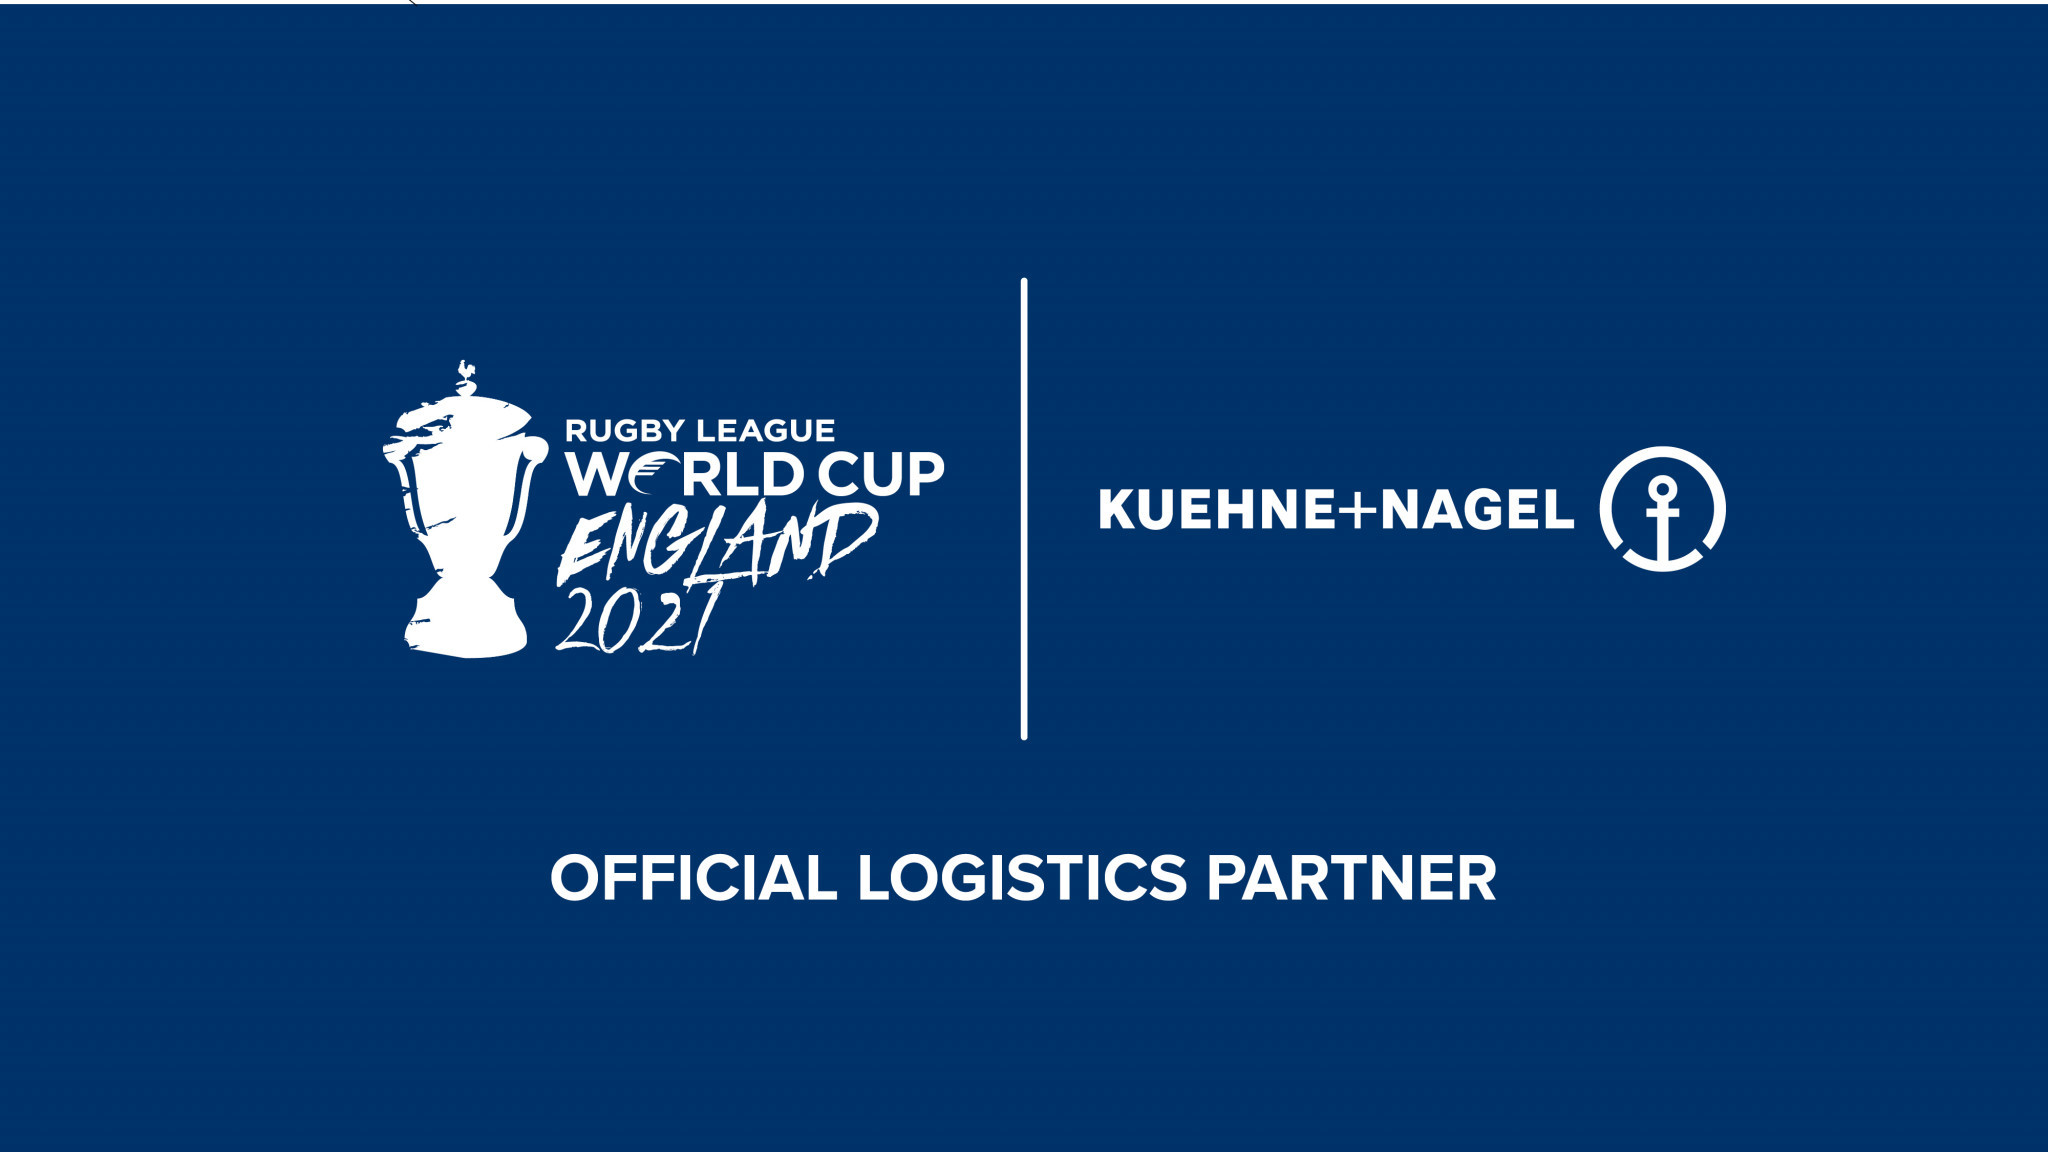 Global transport and logistics company Kuehne+Nagel has been announced as the official logistics partner for the Rugby League World Cup 2021 ©RLWC2021